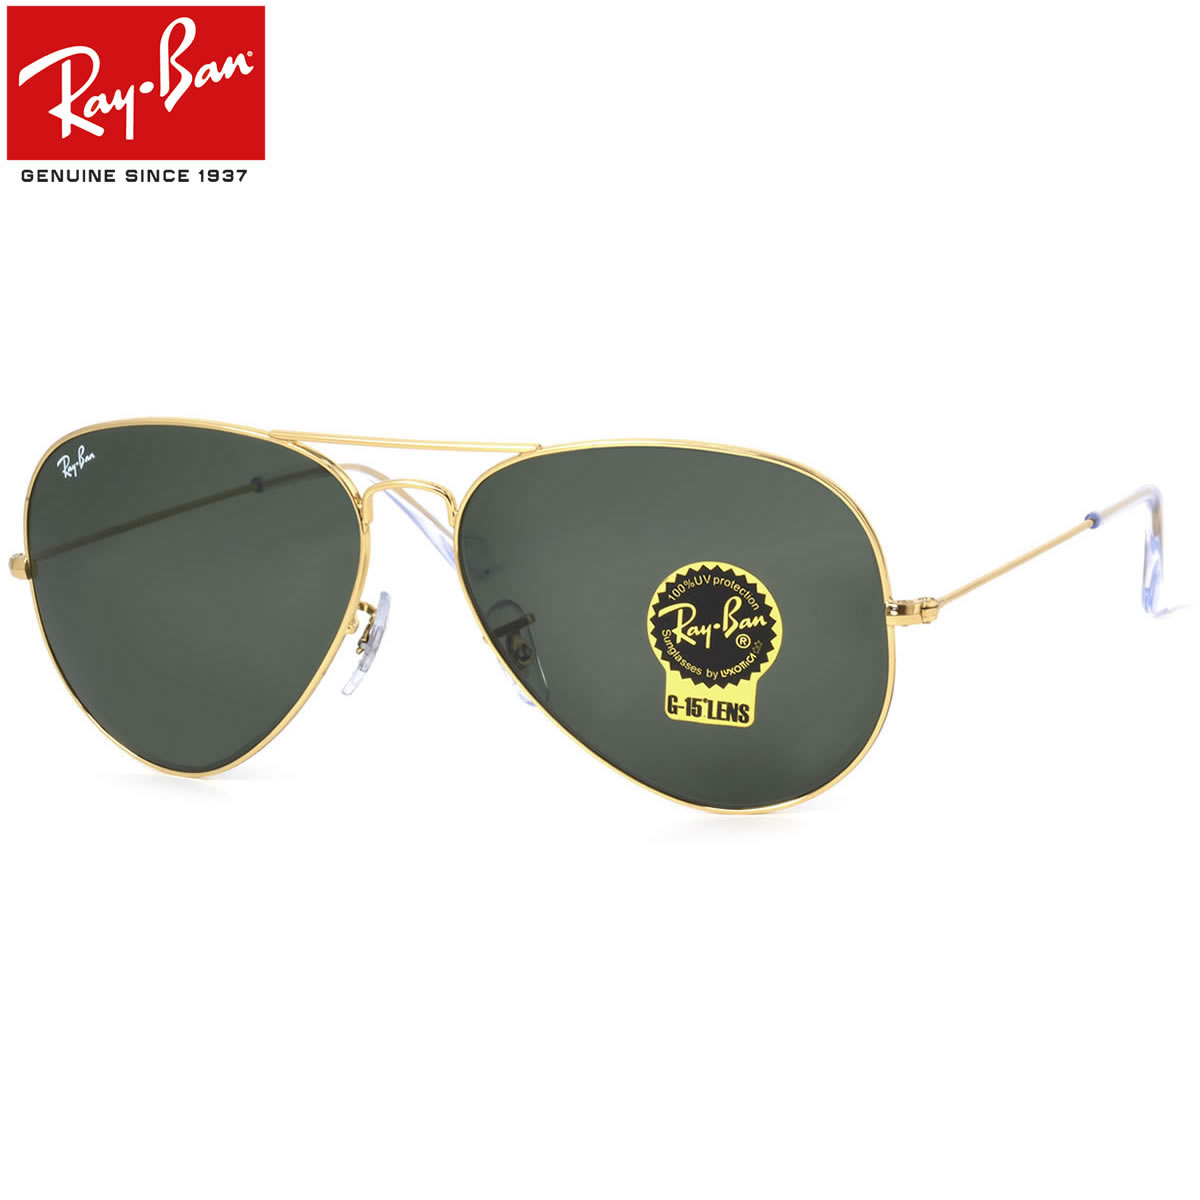 fdaf6f2a10 ... new arrivals ray ban sunglasses rb3026 l2846 62size aviator ii large  genuine new rayban ray ban